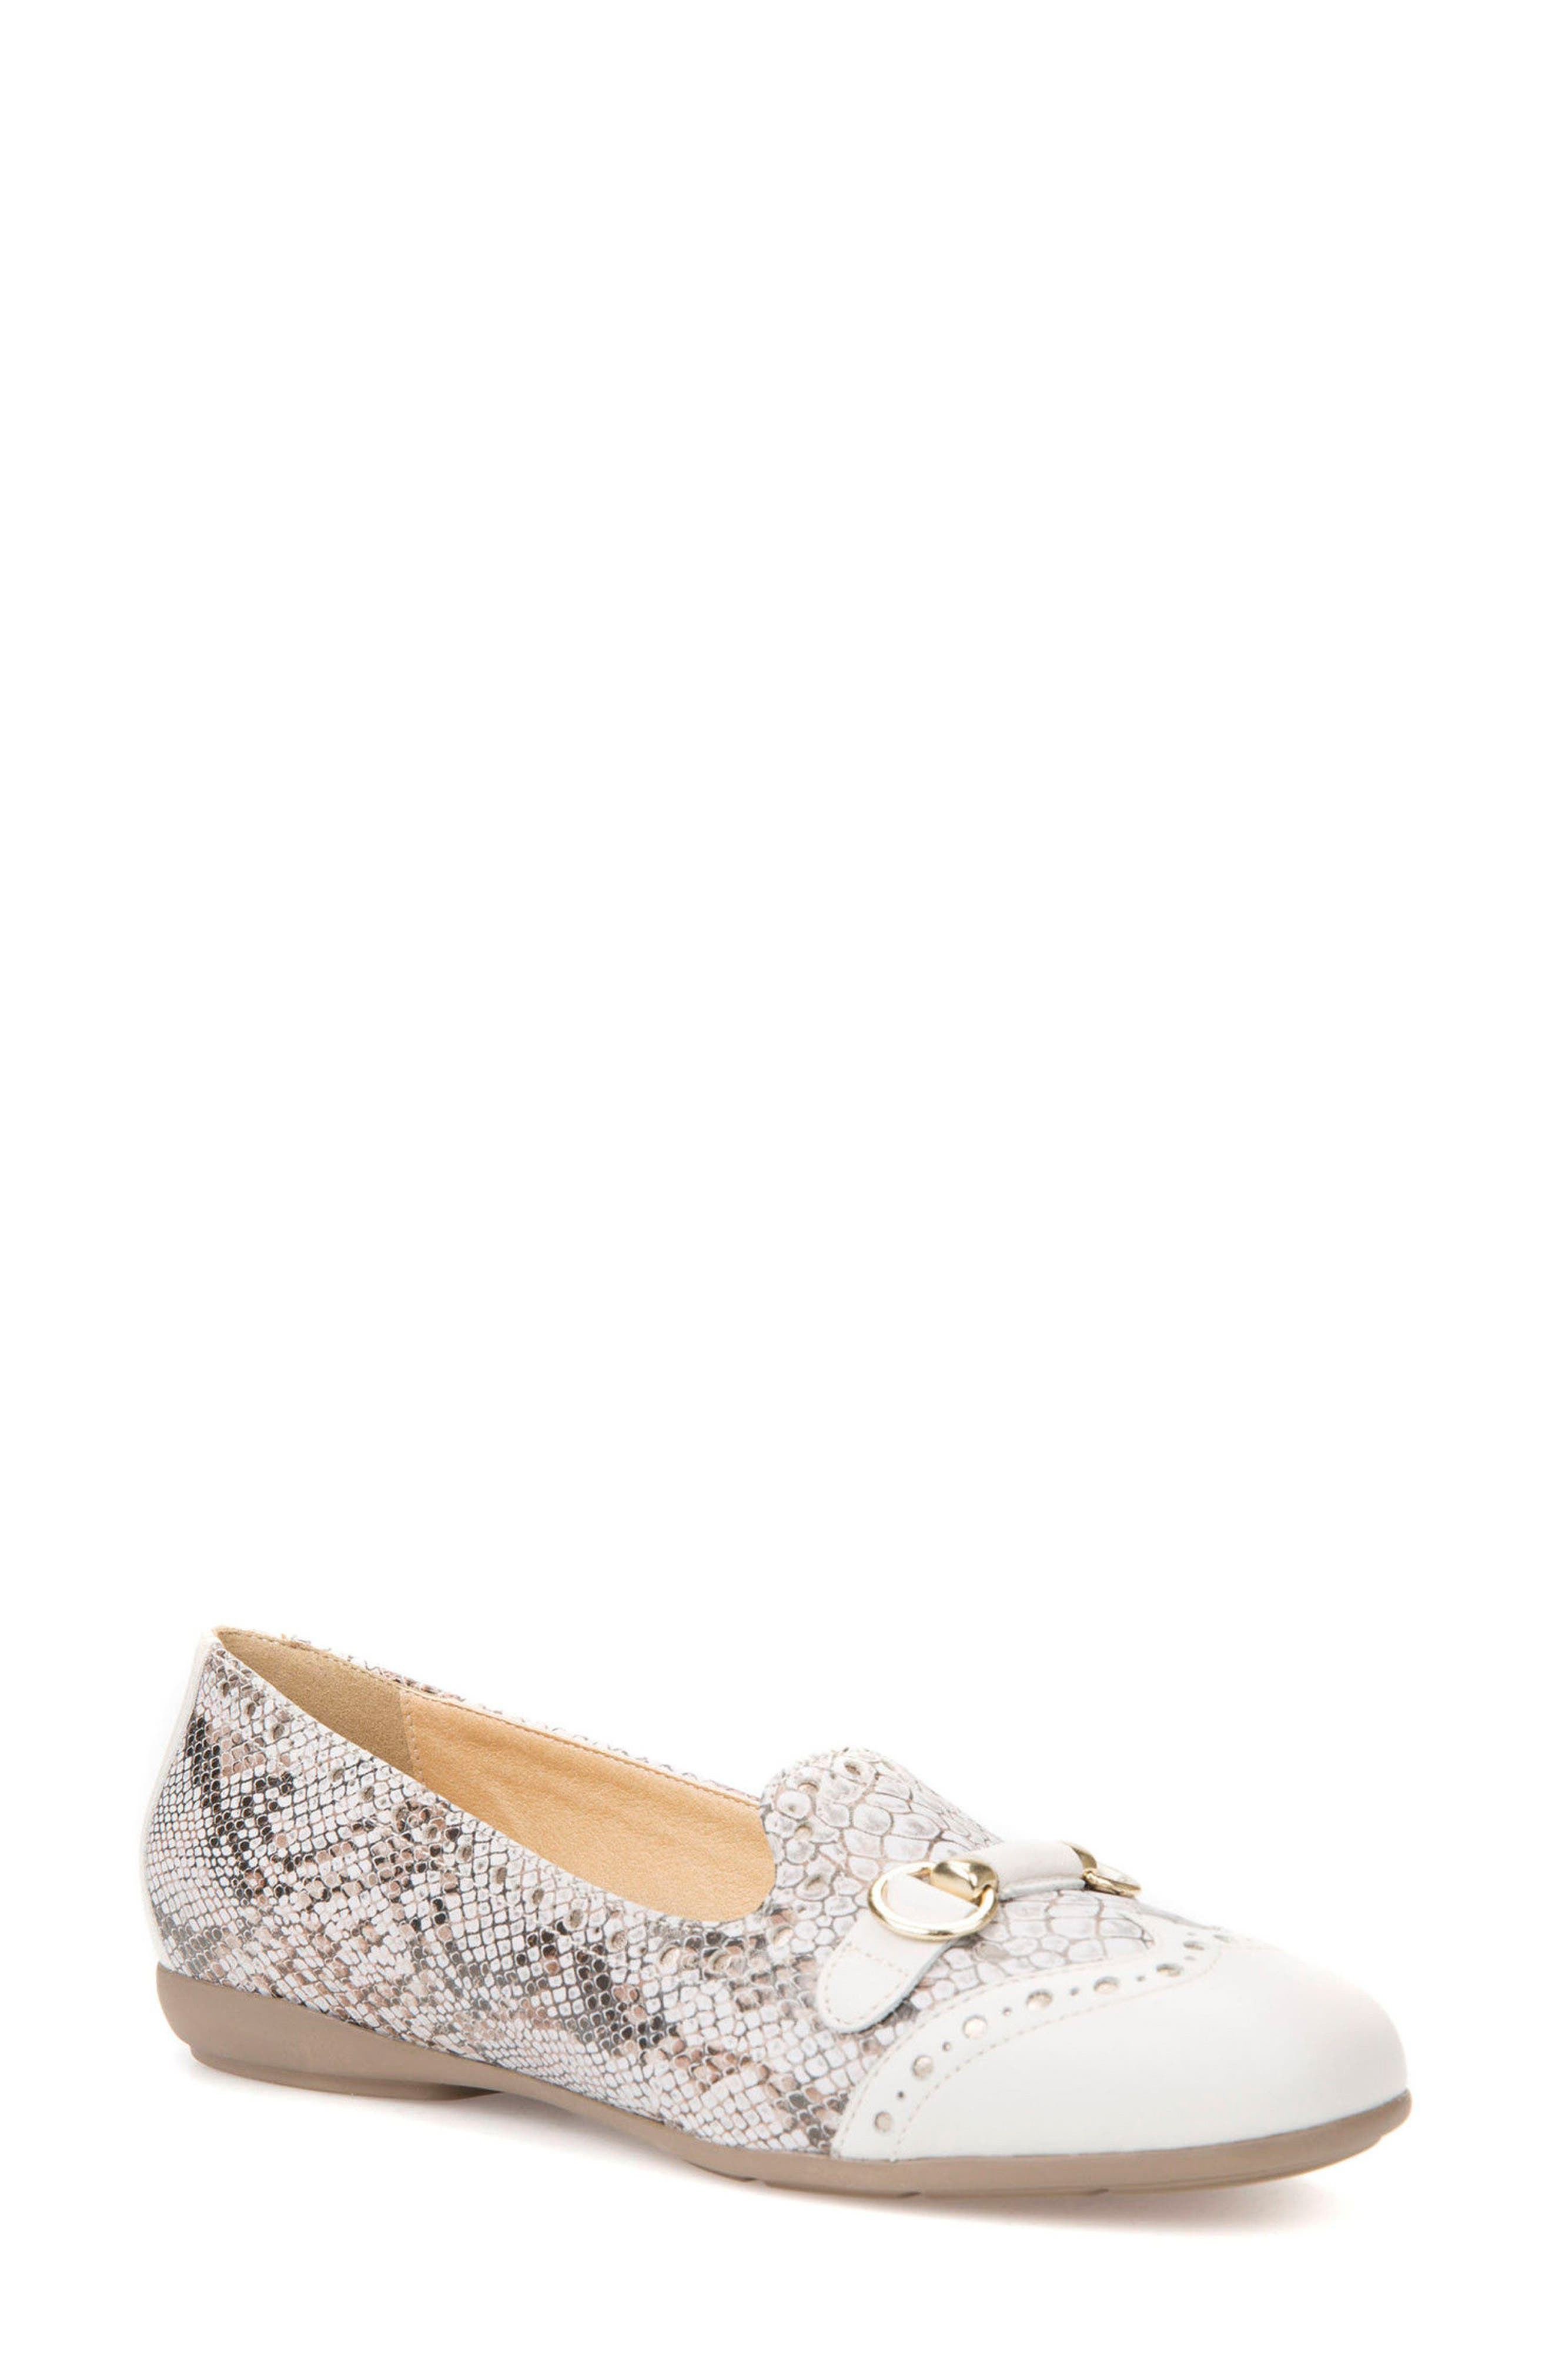 Annytah Loafer,                         Main,                         color, Off White Leather